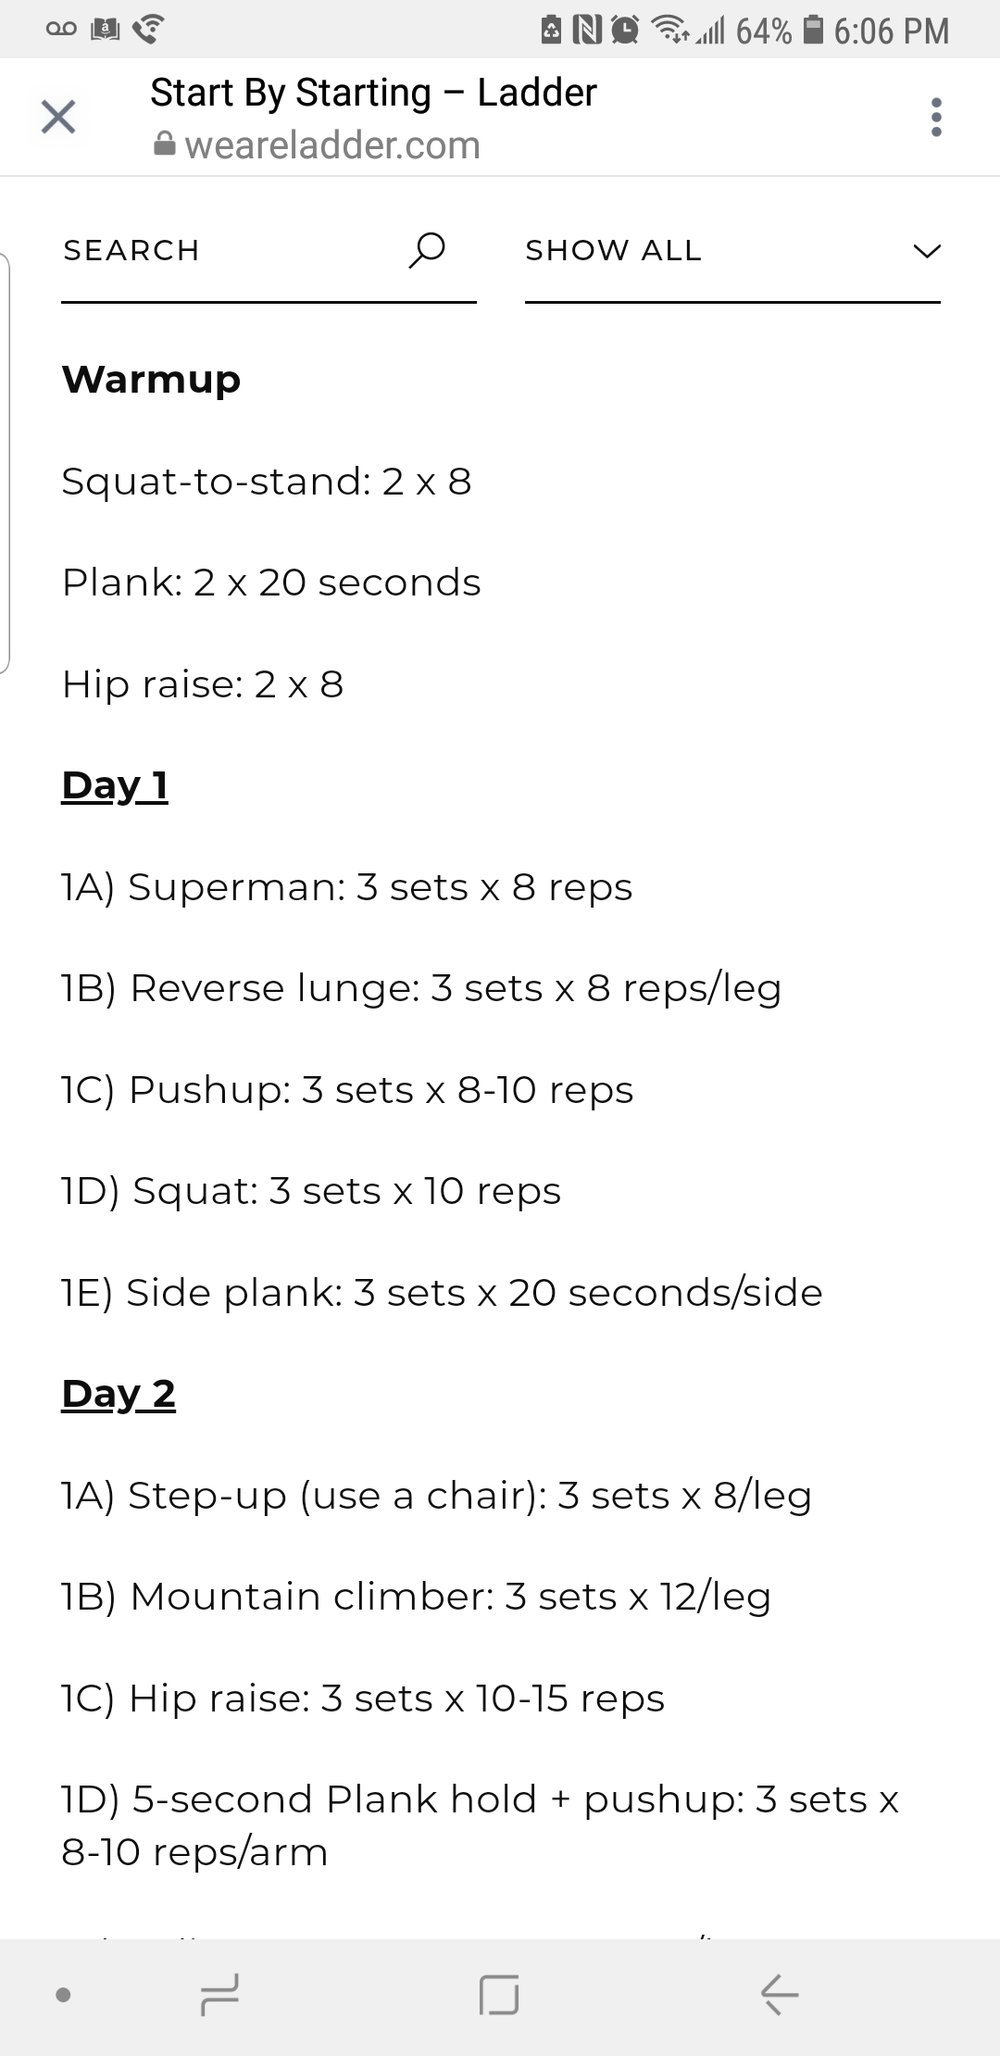 ARNIE'S PROGRAM ANALYSIS DAY 1   Let's look at volume (amount of exercises and sets) and exercise selection (muscle balance).  The Warm-up is 6 sets. The workout is 15 sets. The grand total is 21 sets. This is considered low volume for a mainstream program. For a beginner this MIGHT be ok, but it is on the higher volume end for me. You don't have to exhaust yourself in a workout. Plan to work hard during the sets you do, but leave something in the tank. Your objective is to do enough to get the result and then stop.  Exercise Selection:  When training legs, squats train quads predominantly and deadlifts train glutes/hamstrings predominantly. In your program you have to have a balance of each equally (generally speaking). If you don't you will get hurt. This program has 3 squat varieties and 1 from the deadlift family. If you do this program your quads will be tightening 3x as fast as your glutes and hamstrings. This means you are headed for knee pain and eventual injury to the knee.  When training upper body bench press trains chest and the front deltoids (front of shoulder). Rowing exercises train the back. This program has 2 exercise training the chest, the push-up and plank. It has 2 exercises training the deltoids, the plank and the side plank and 0 exercises training the back. If you do this program your chest will become tighter than your back. You will develop shoulder pain (most likely neck as well) and eventual injury to the shoulder.  When training the abdominals this program has...well not much. The plank is an advanced integrated abdominal exercise as described by Ian King in his books (i.e. How to Write Strength Training Programs). If you follow this program you will not develop abdominals, BUT you WILL develop back pain.   So just from doing day 1 you are on your way to neck pain, knee pain and lower back pain...your orthopedic doctor is already counting his/her money. Onto Day 2...  I DO NOT RECOMMEND THIS PROGRAM TO BE CLEAR